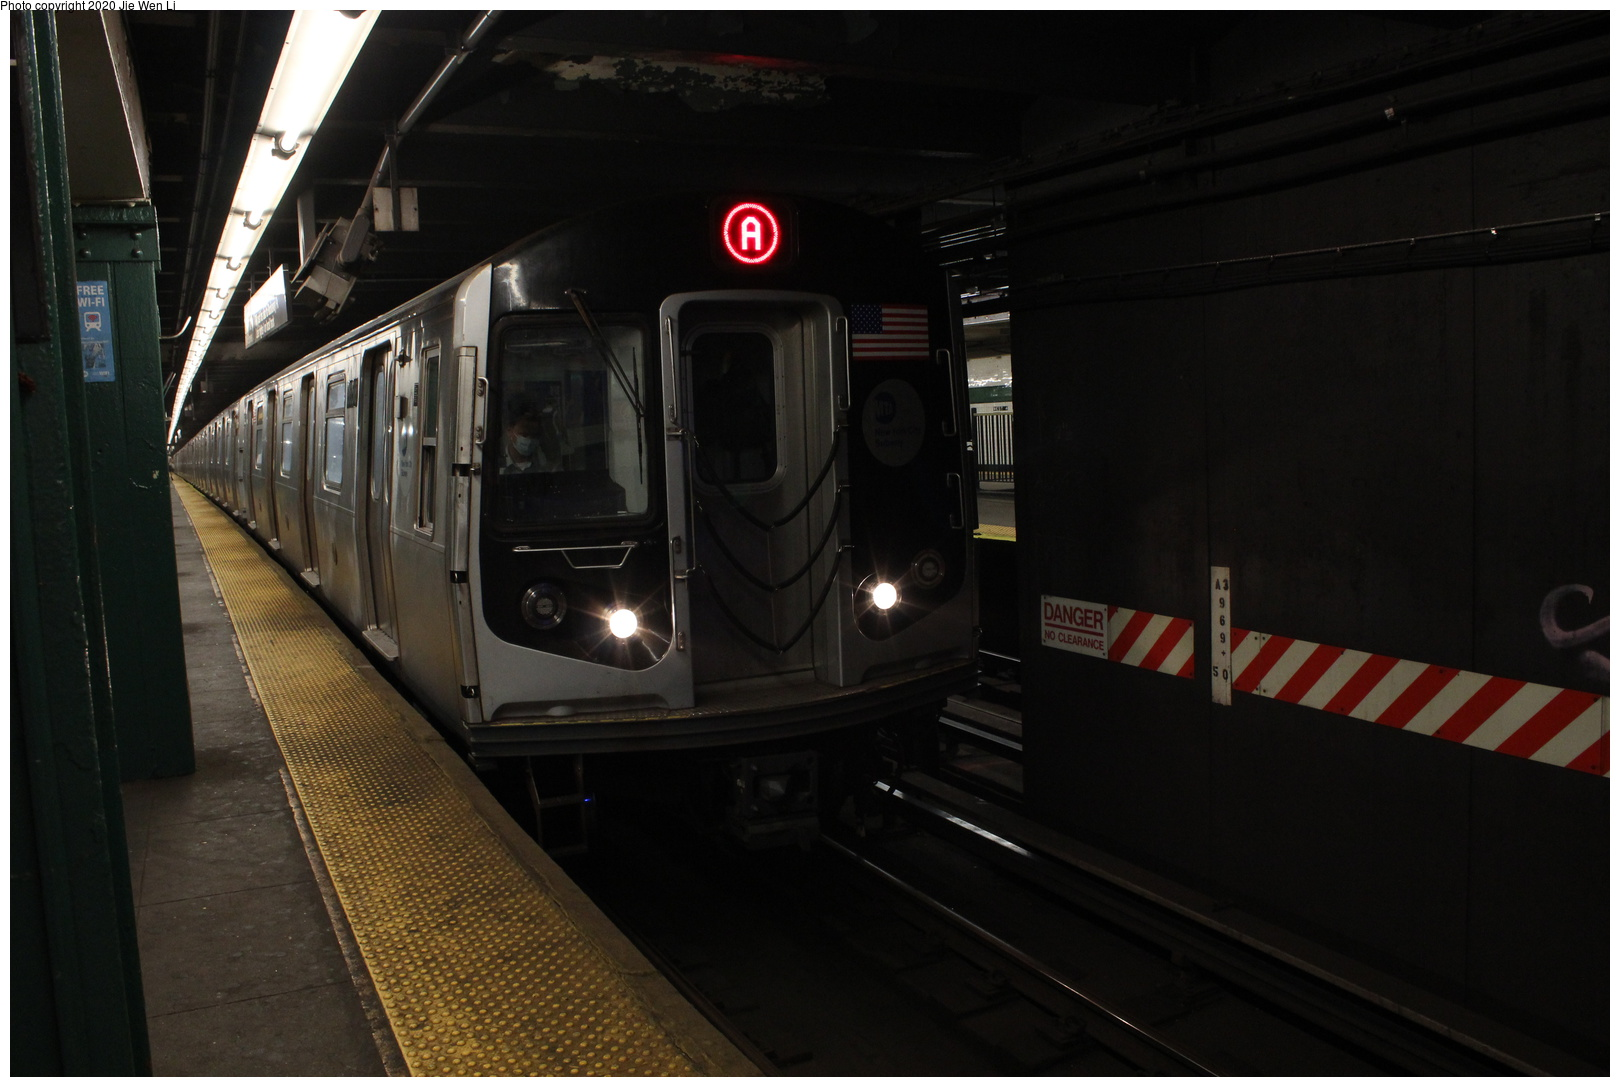 (245k, 1044x684)<br><b>Country:</b> United States<br><b>City:</b> New York<br><b>System:</b> New York City Transit<br><b>Line:</b> IRT Flushing Line<br><b>Location:</b> Willets Point/Mets (fmr. Shea Stadium) <br><b>Route:</b> 7 Special<br><b>Car:</b> R-29 (St. Louis, 1962)  <br><b>Photo by:</b> Joel Shanus<br><b>Date:</b> 1964<br><b>Viewed (this week/total):</b> 3 / 2081